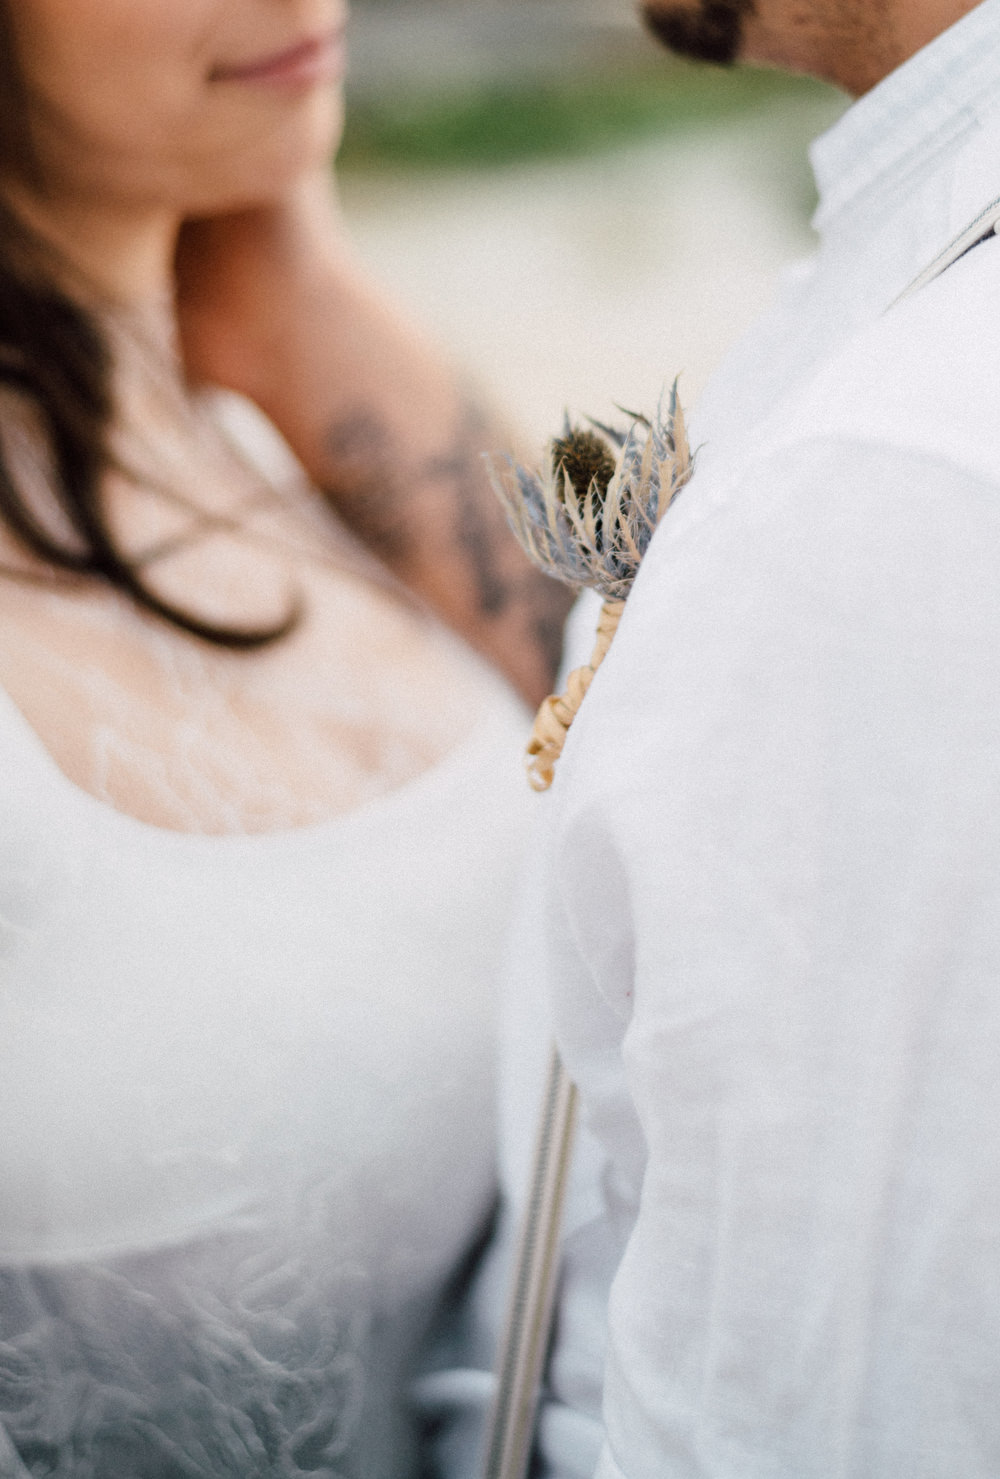 Outdoor Wild Nature Destination Spain Europe Beach Styled Shoot Groom Braces Bride Blue Gown Lace Sea Holly Buttonhole | Blue Ibiza Elopement Ideas and Surprise Proposal Serena Genovese Photography